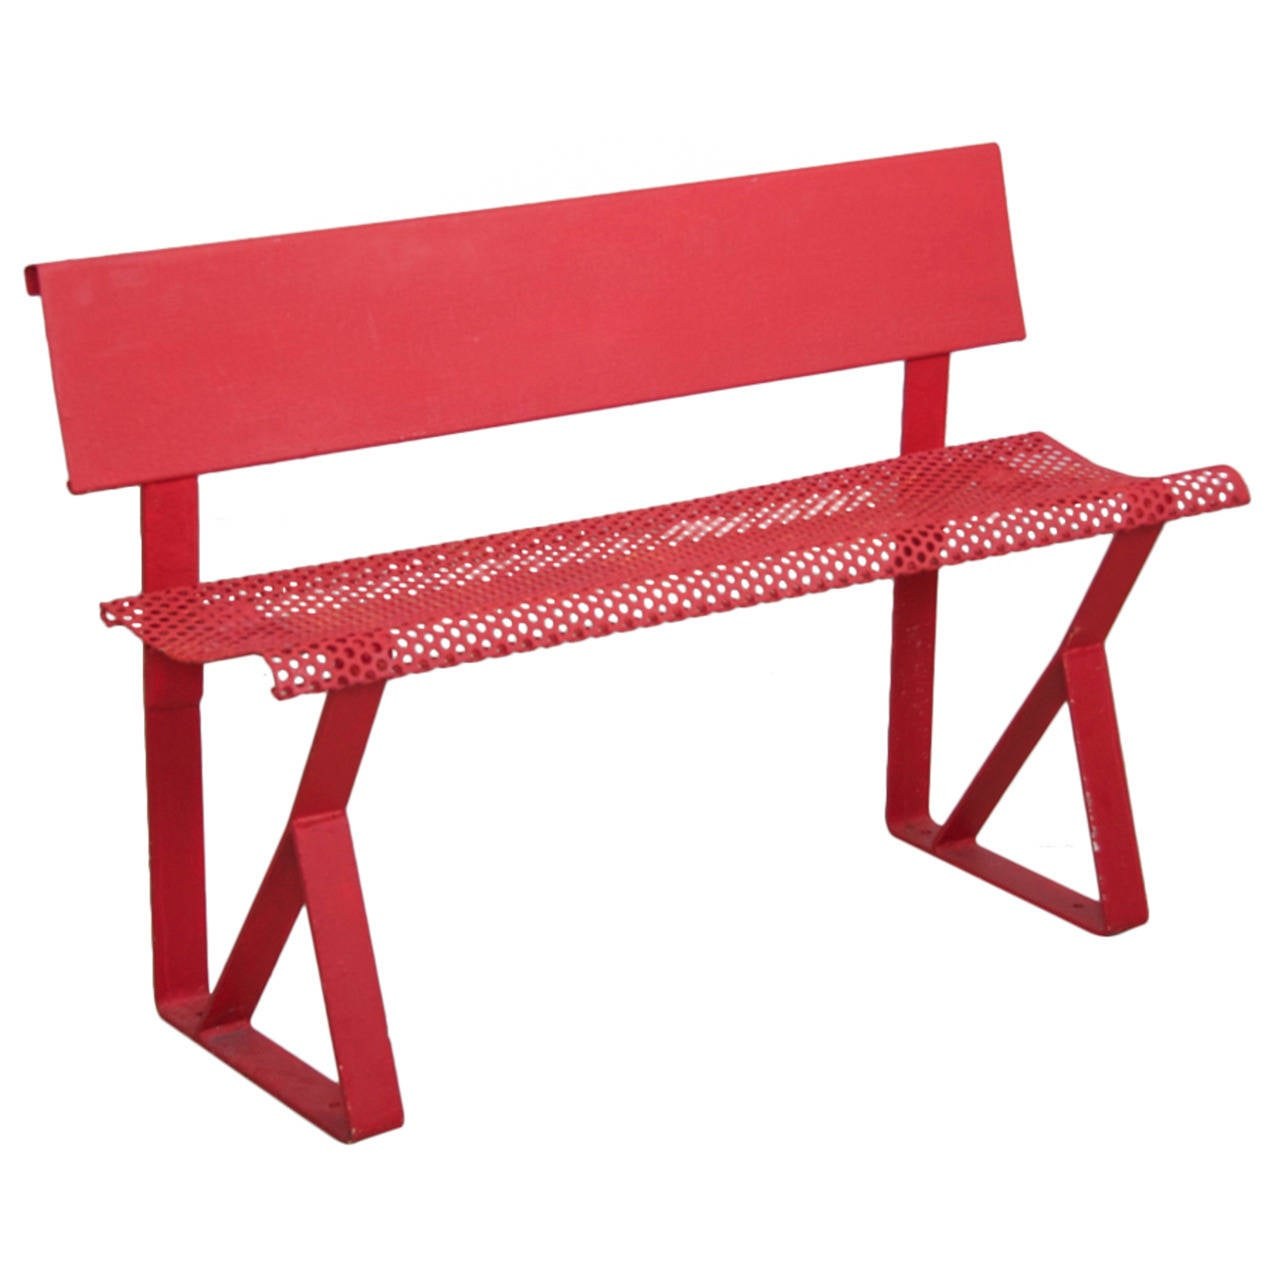 French 1960s Industrial Kids Bench